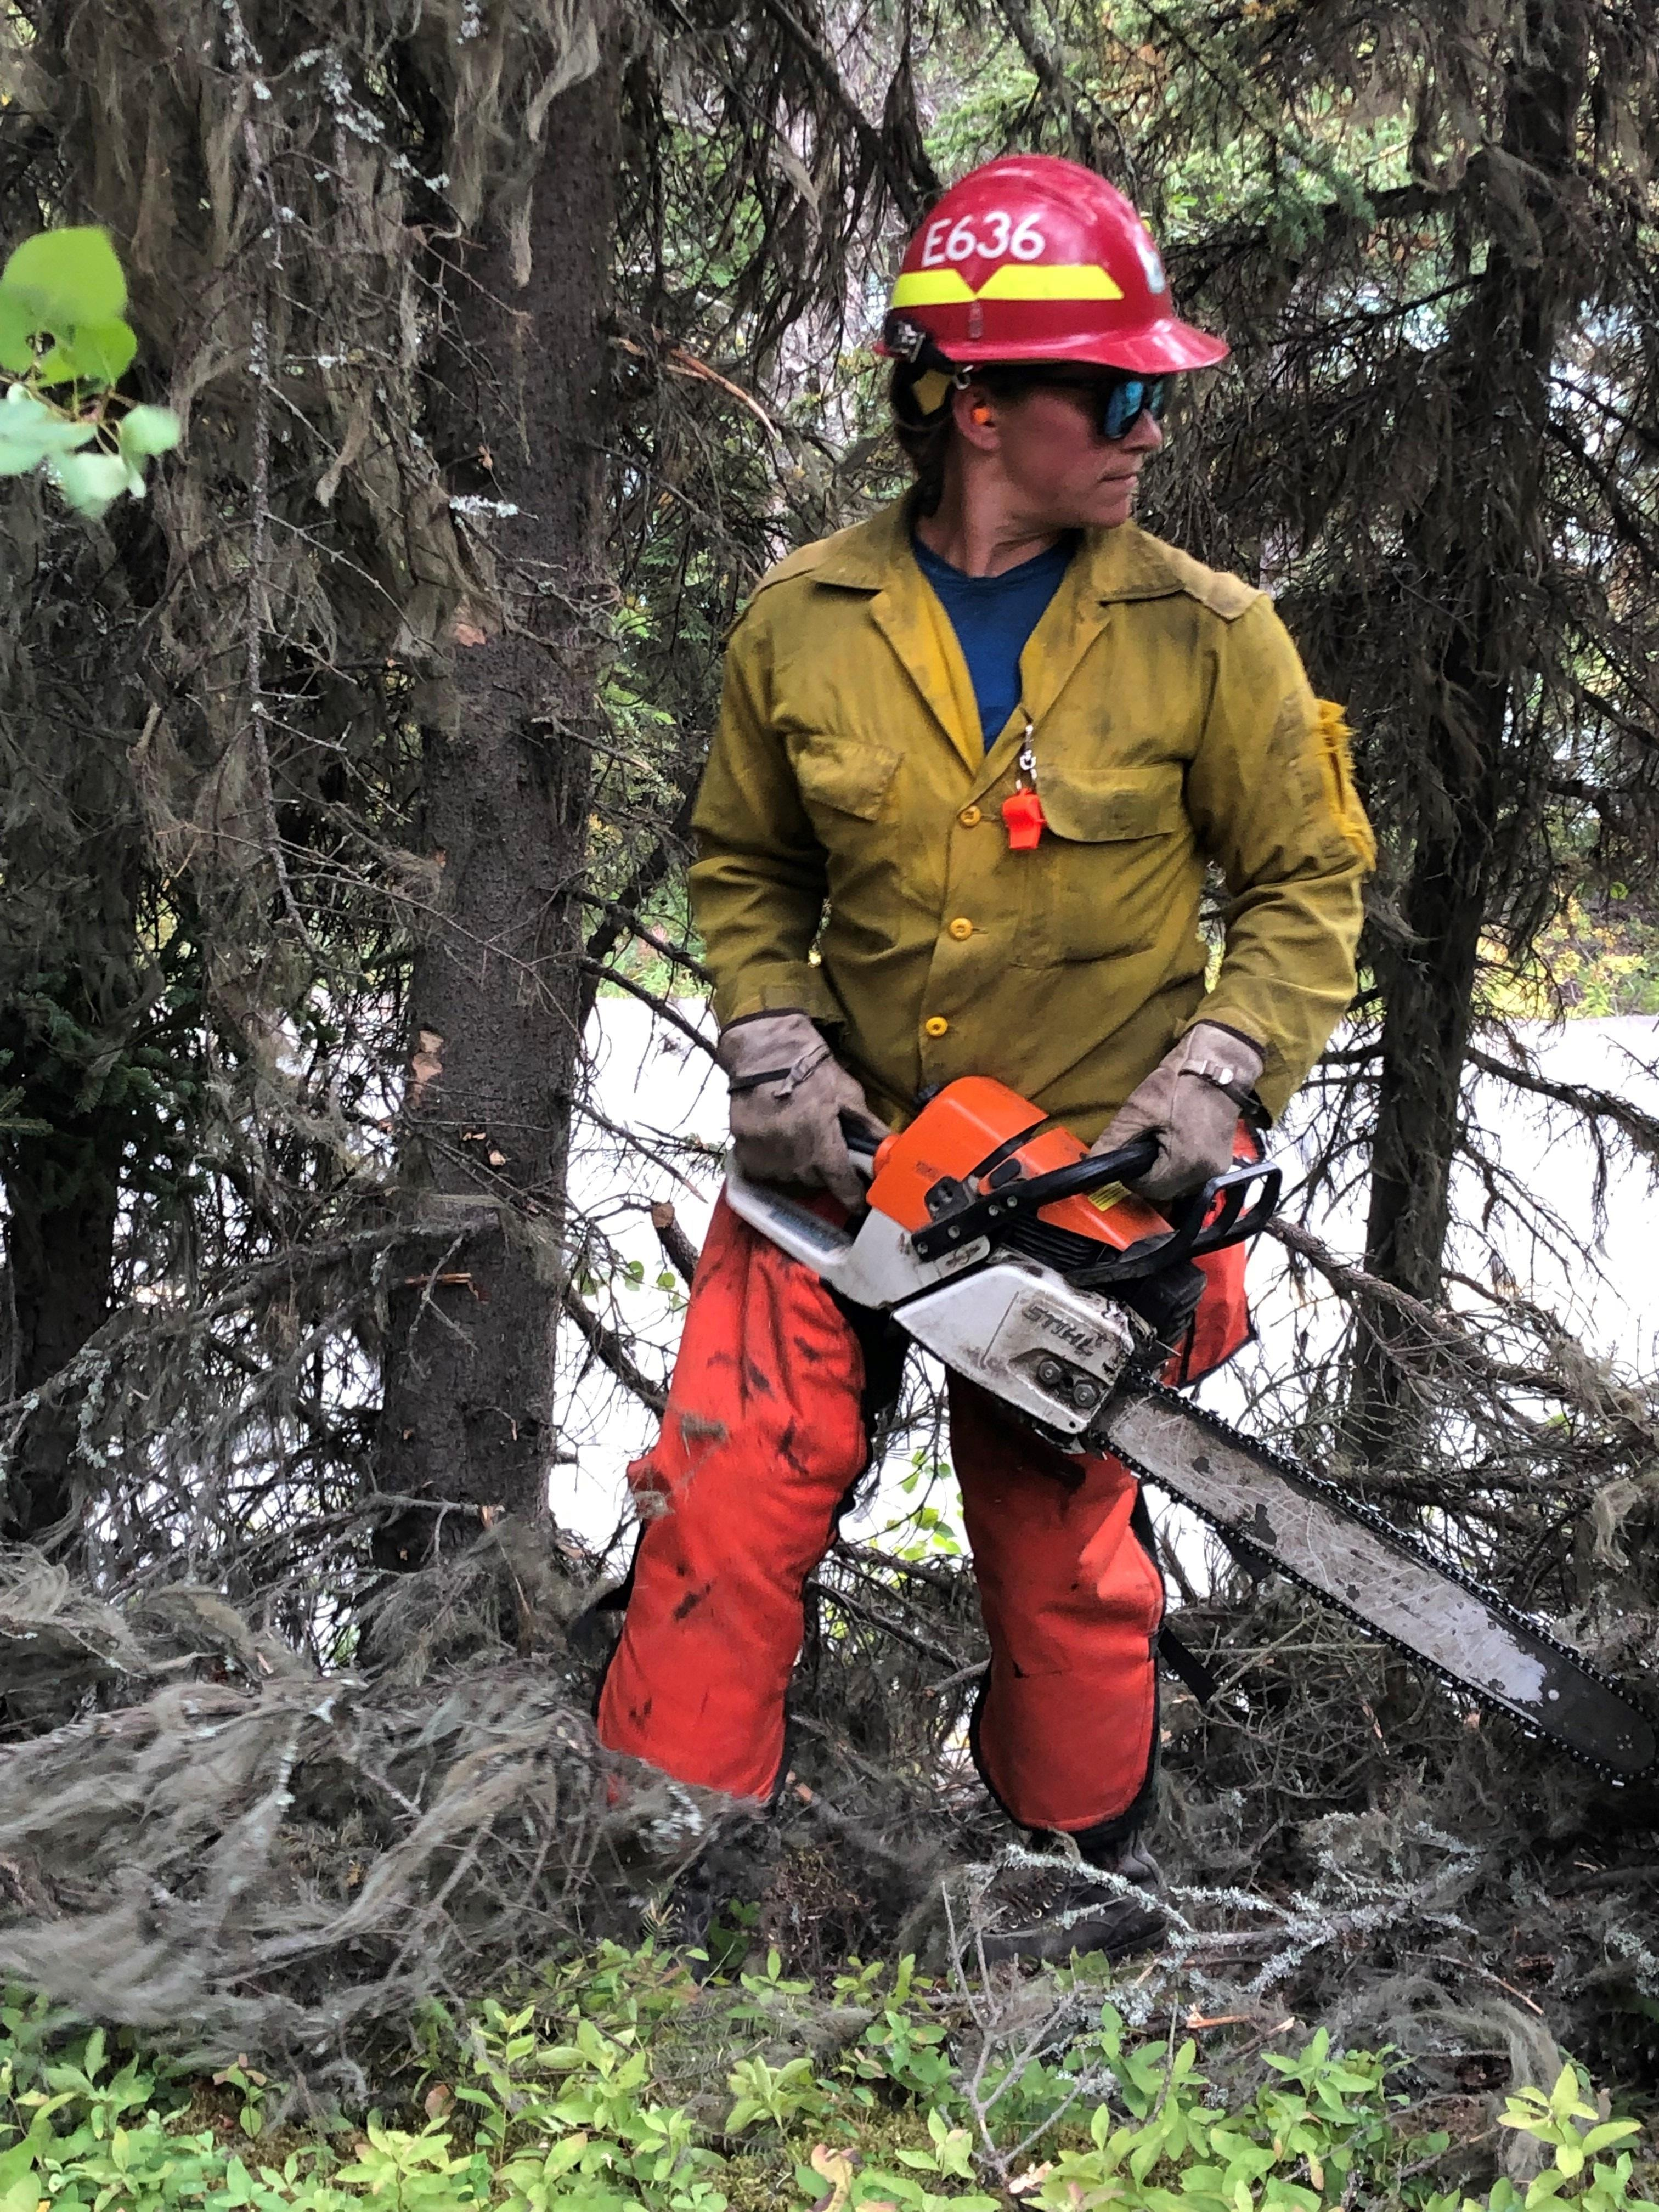 Sept. 1 - A firefighter in full protective gear is holding a chainsaw. She is pausing to determine where to go next as she has been limbing up trees to provide for increased defensible space around structures.